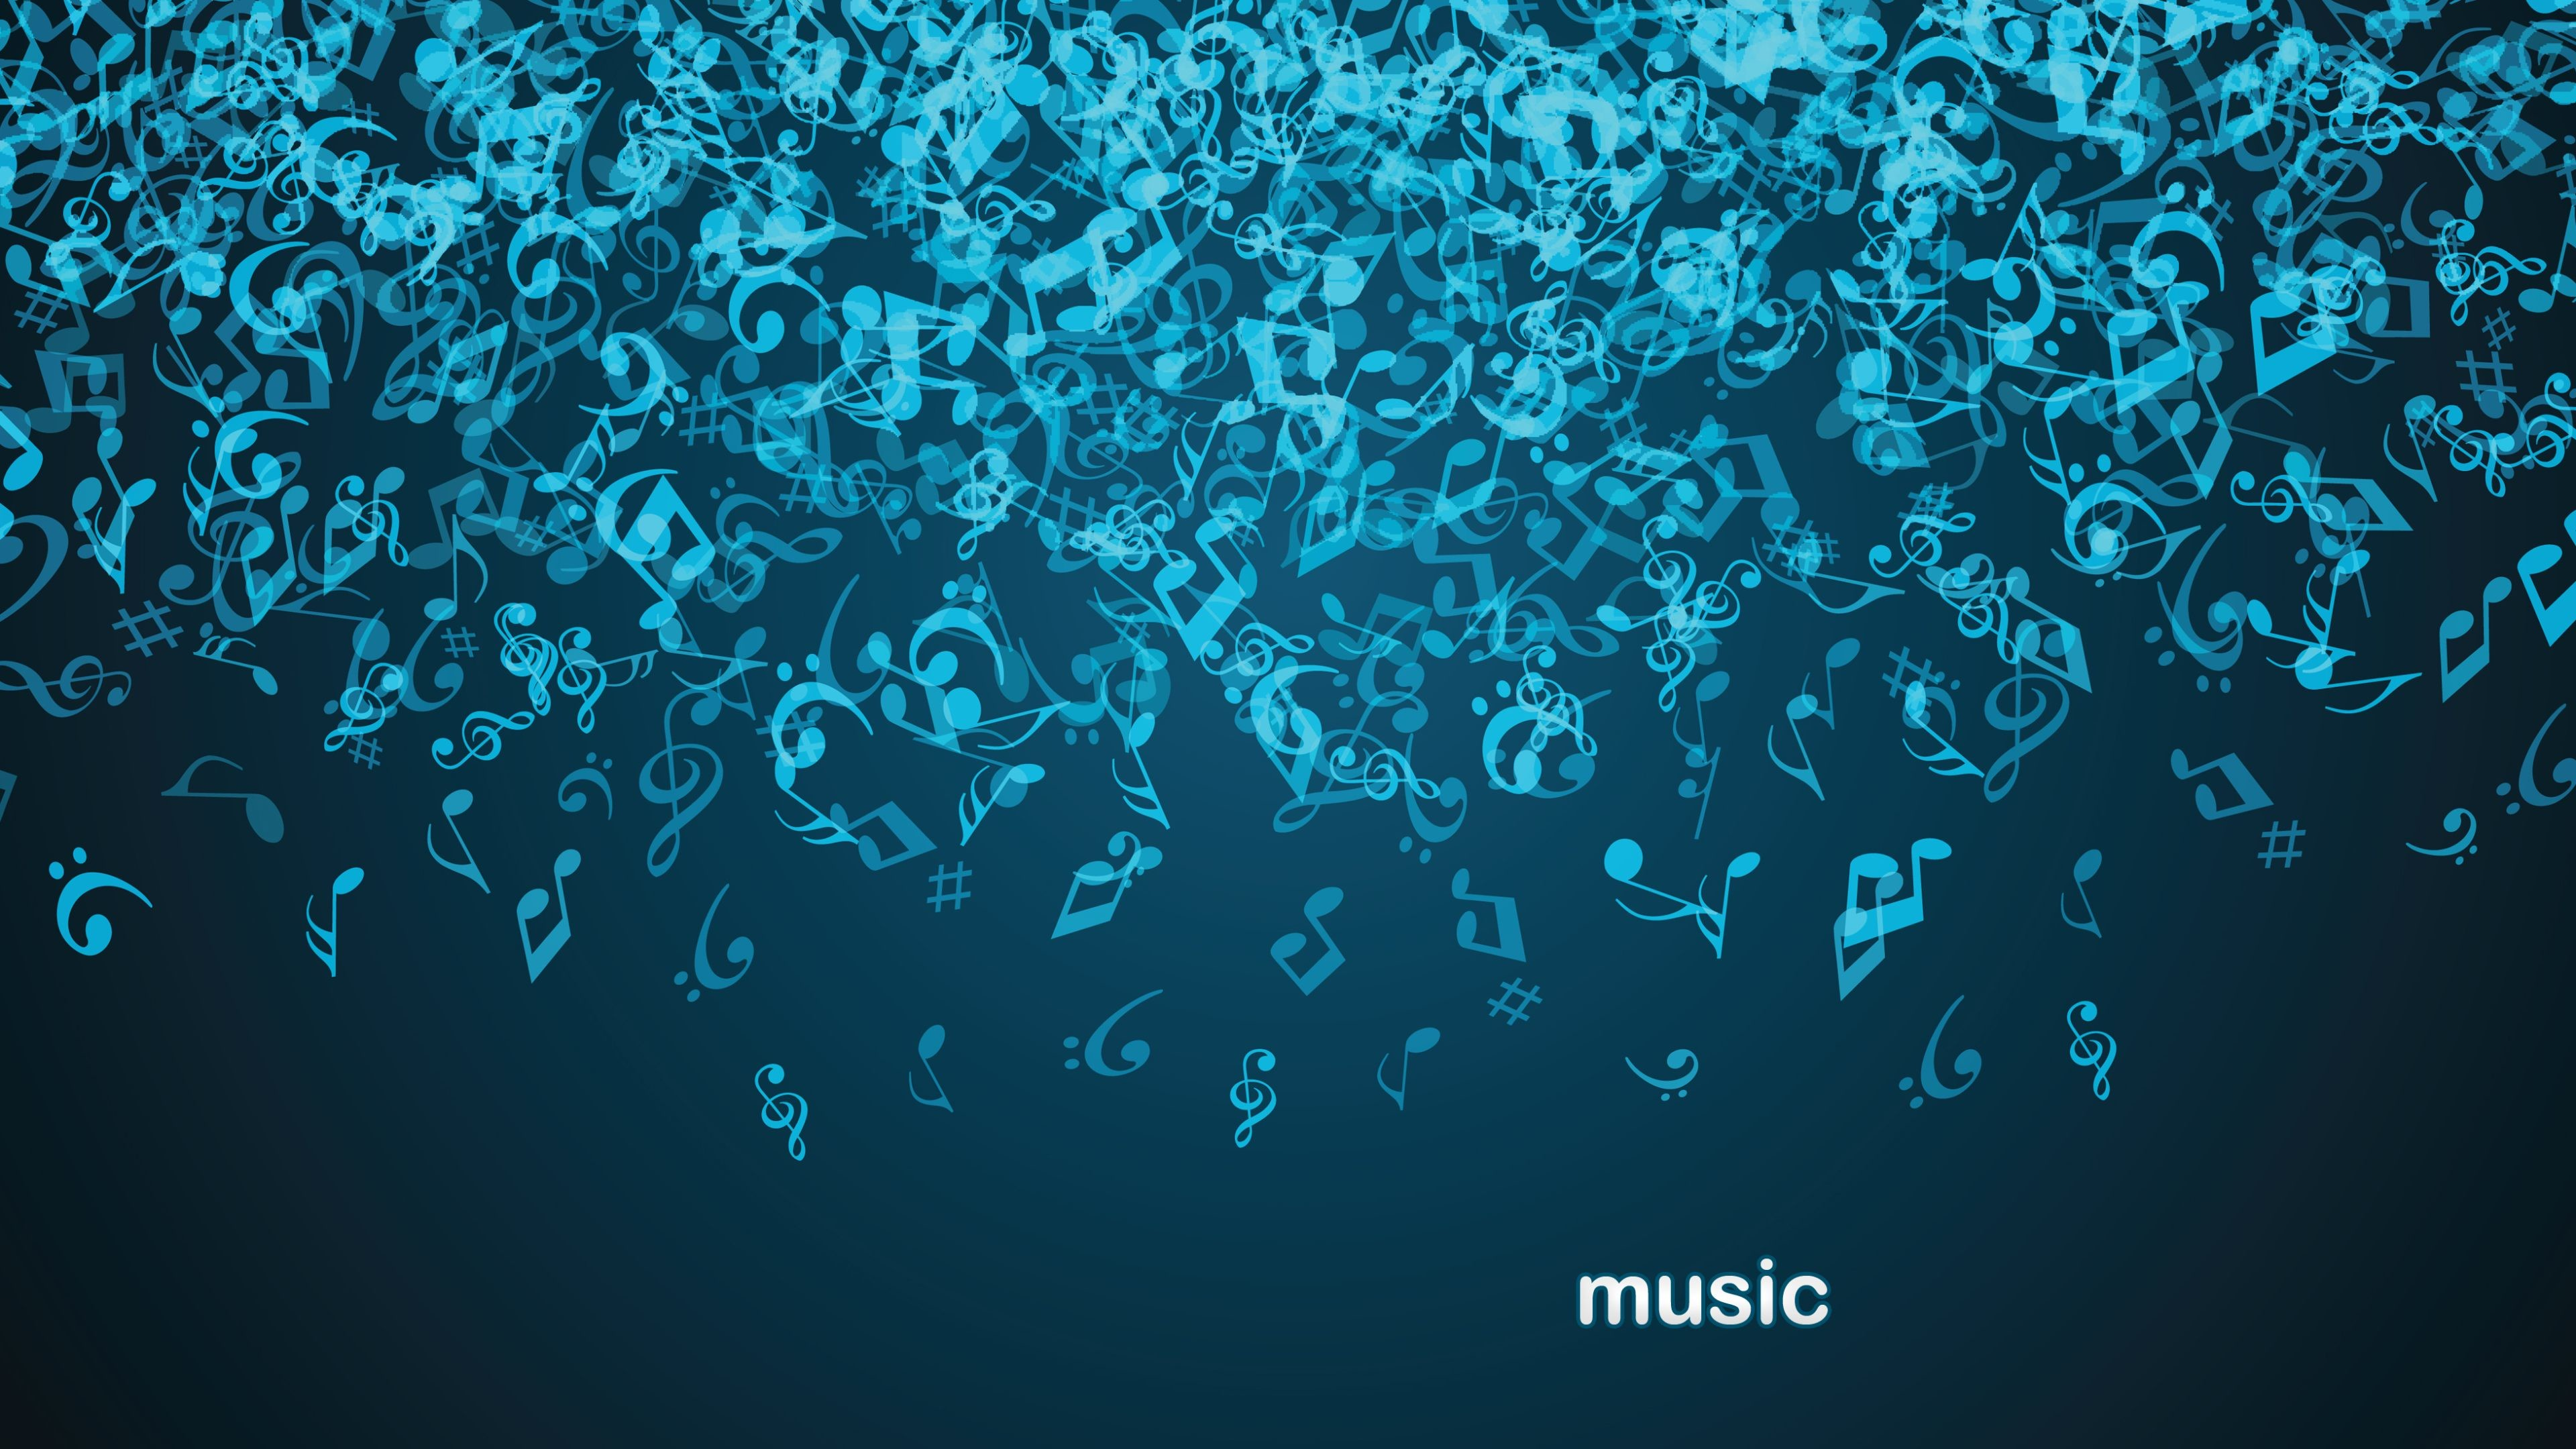 892398-large-music-background-image-3840x2160-hd-1080p.jpg